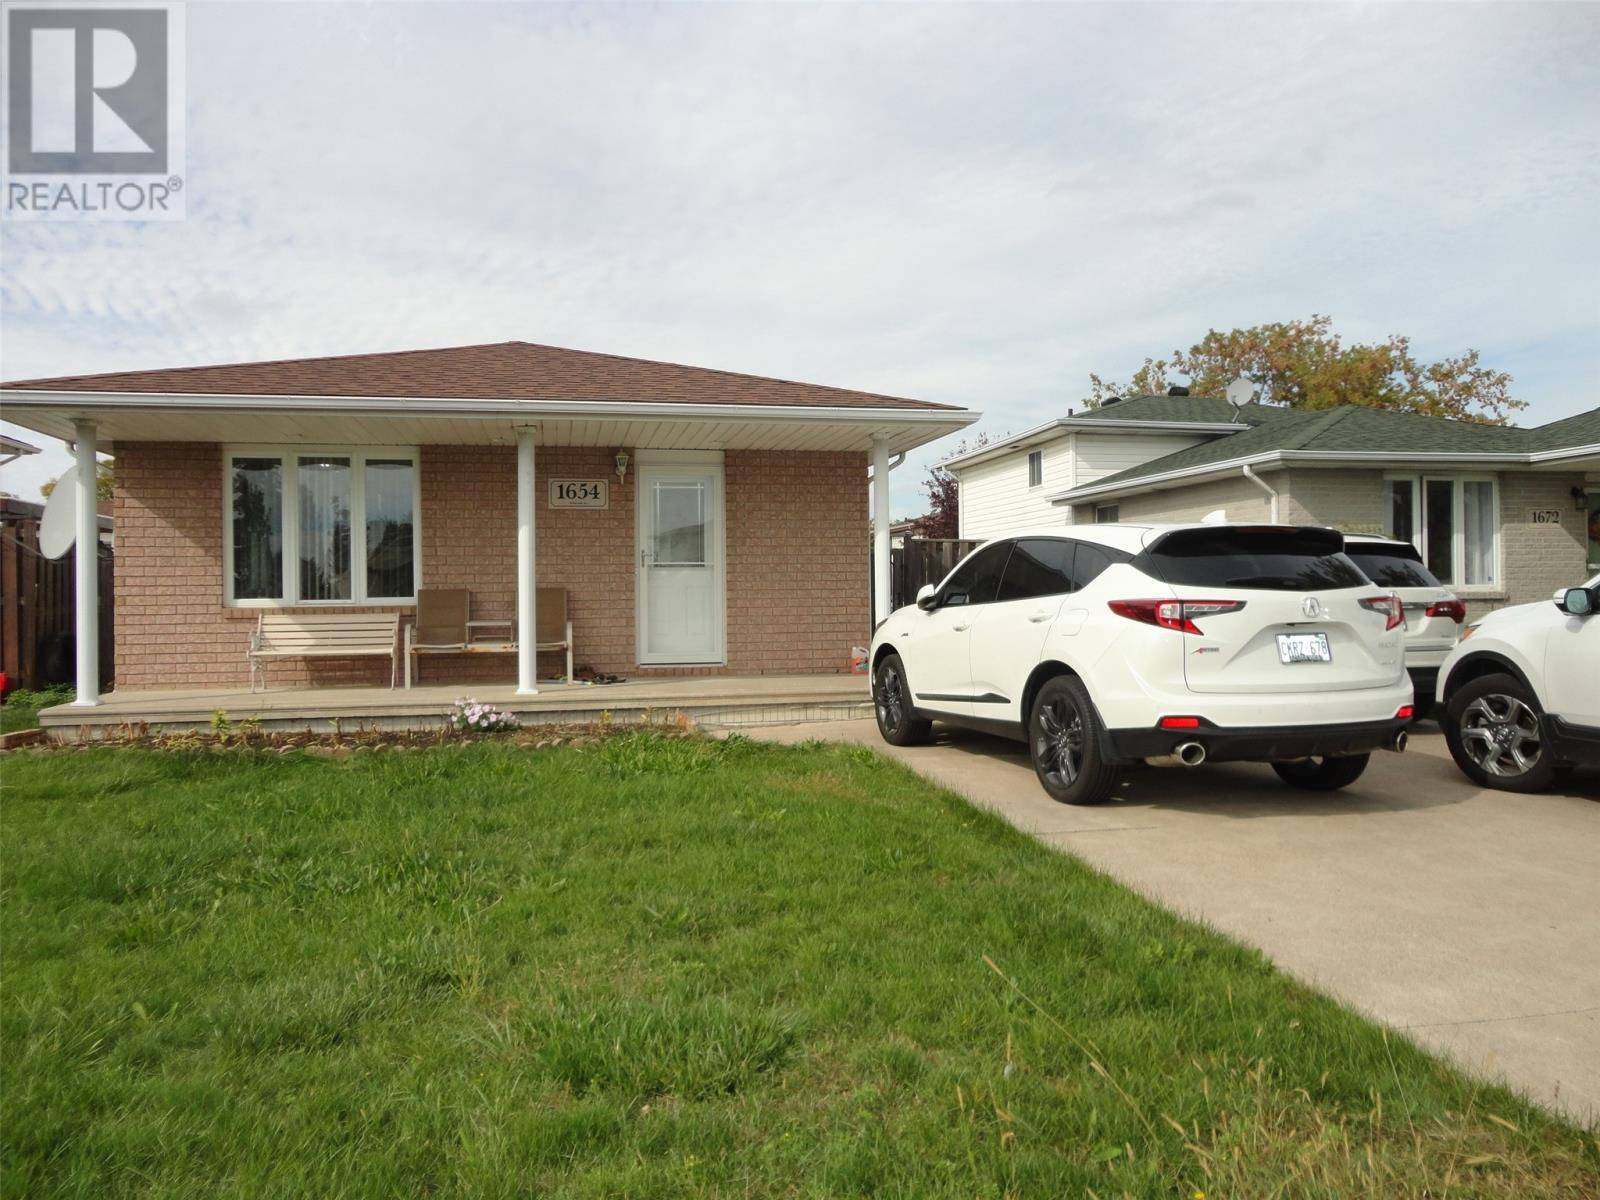 House for sale at 1654 Foster Ave Windsor Ontario - MLS: 19026518